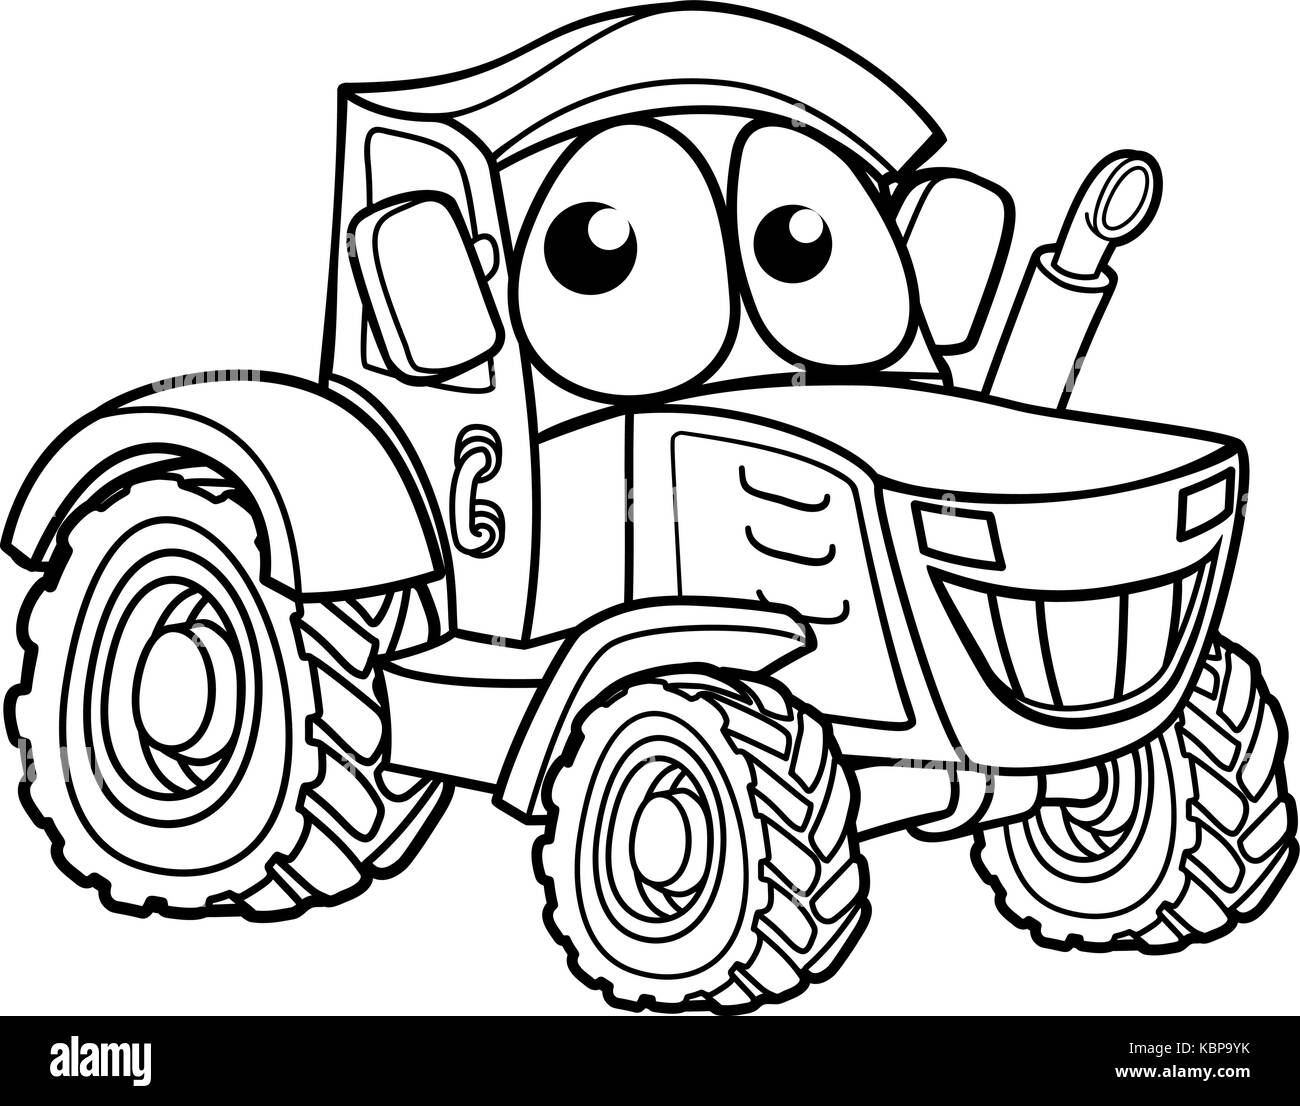 Tractor Cartoon Picker : Combine harvester black and white stock photos images